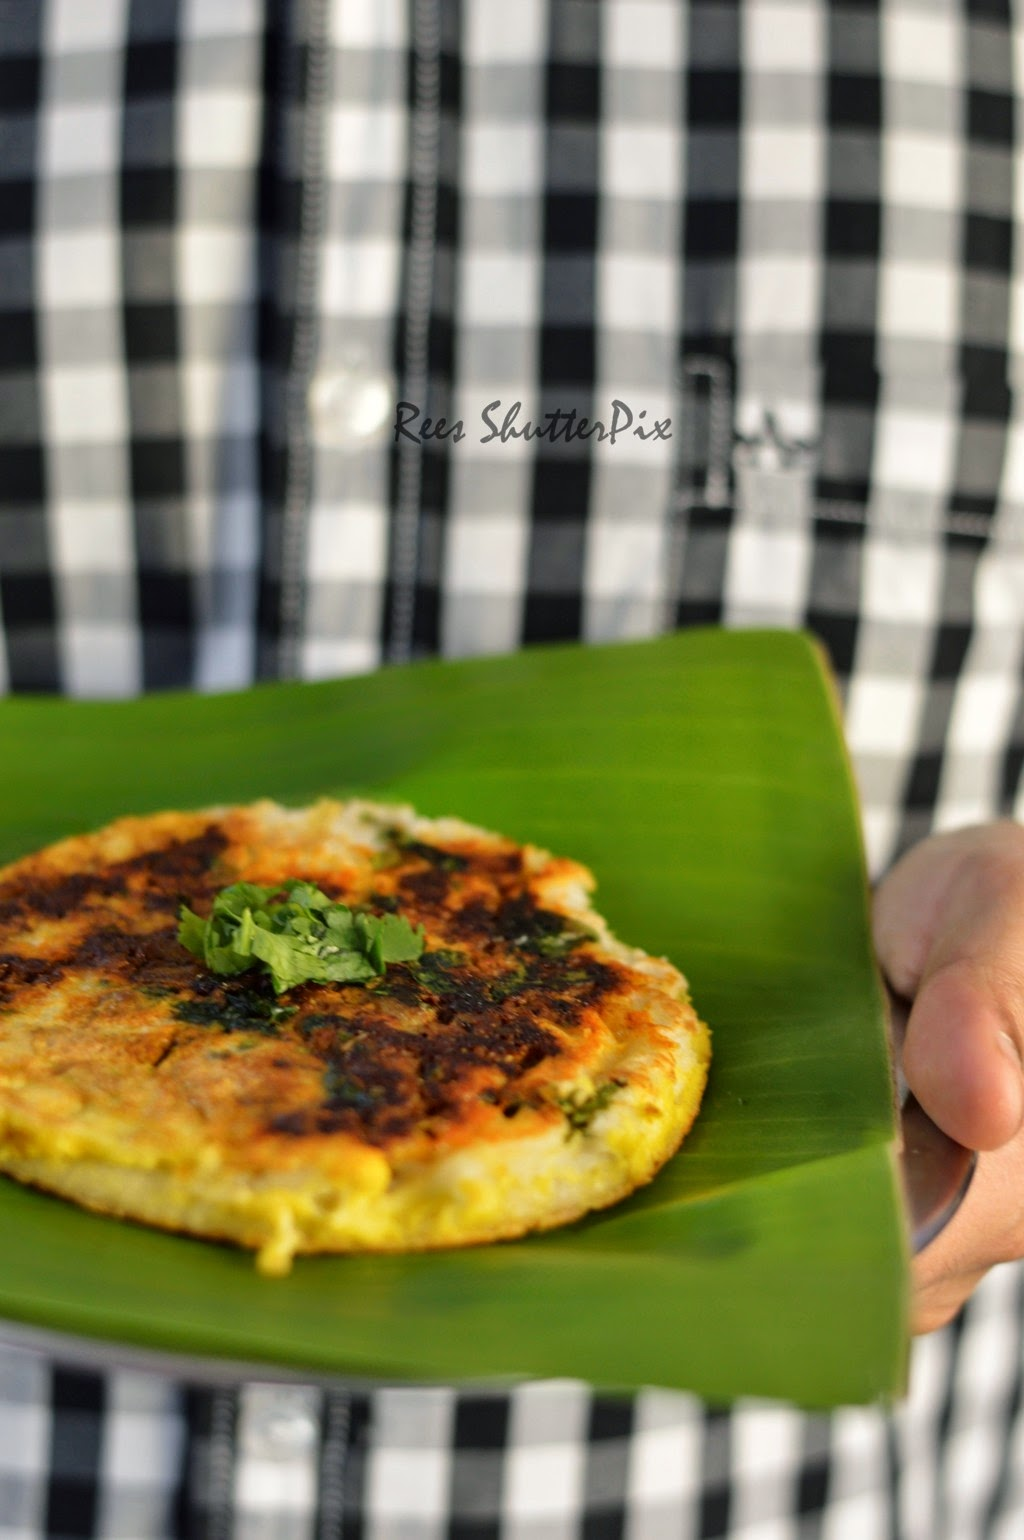 Madurai Famous Recipes, Roadside Foods, madurai kari dosa, kari dosai recipe in tamil, kari dosa madurai style, roadside kari dosa recipe, step wise pictures